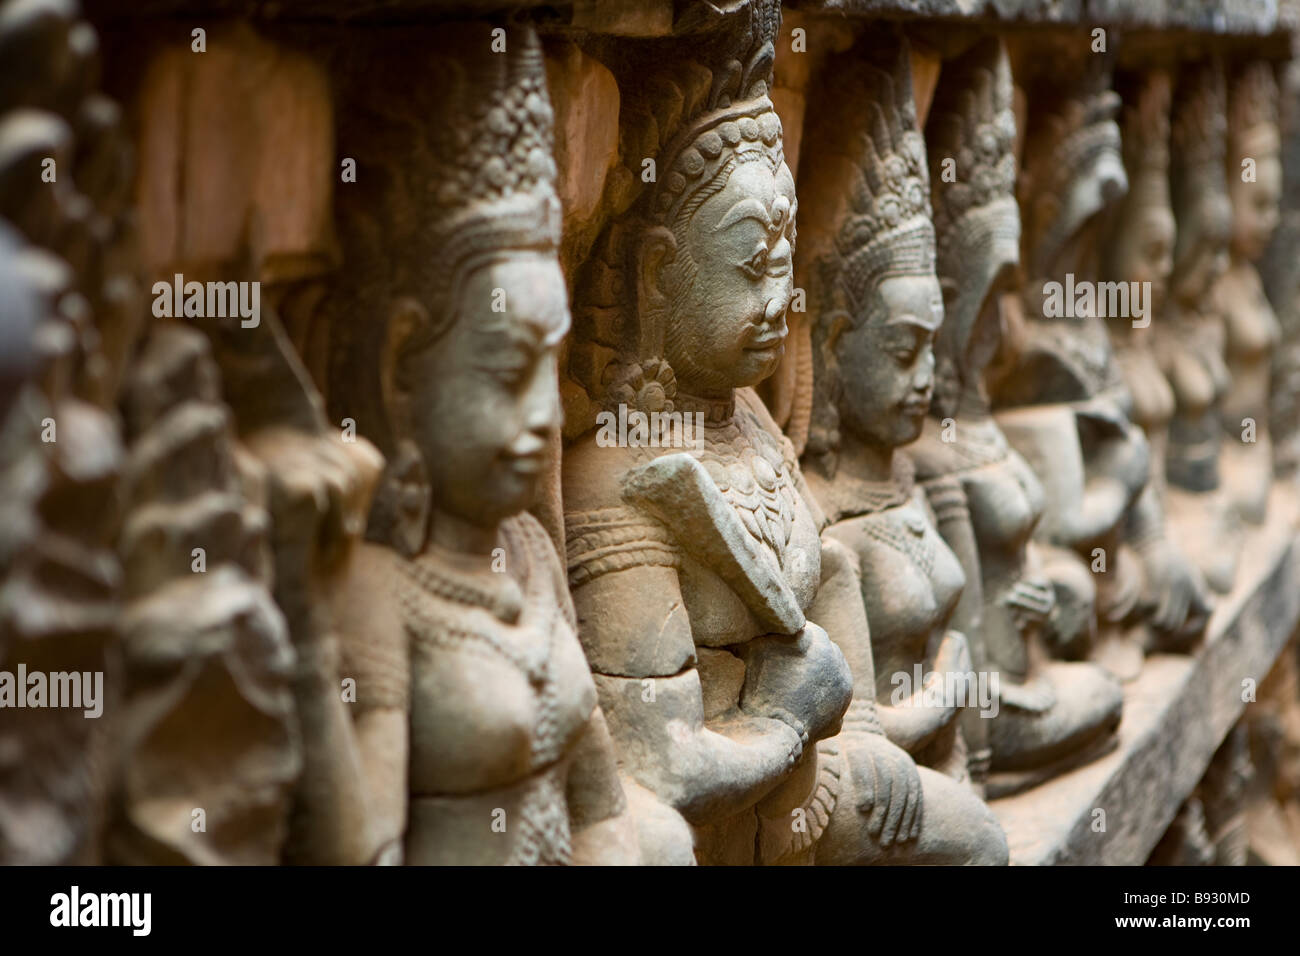 Sculptures on the walls photographed at the Terrace of the Leper King Angkor Wat City Cambodia - Stock Image